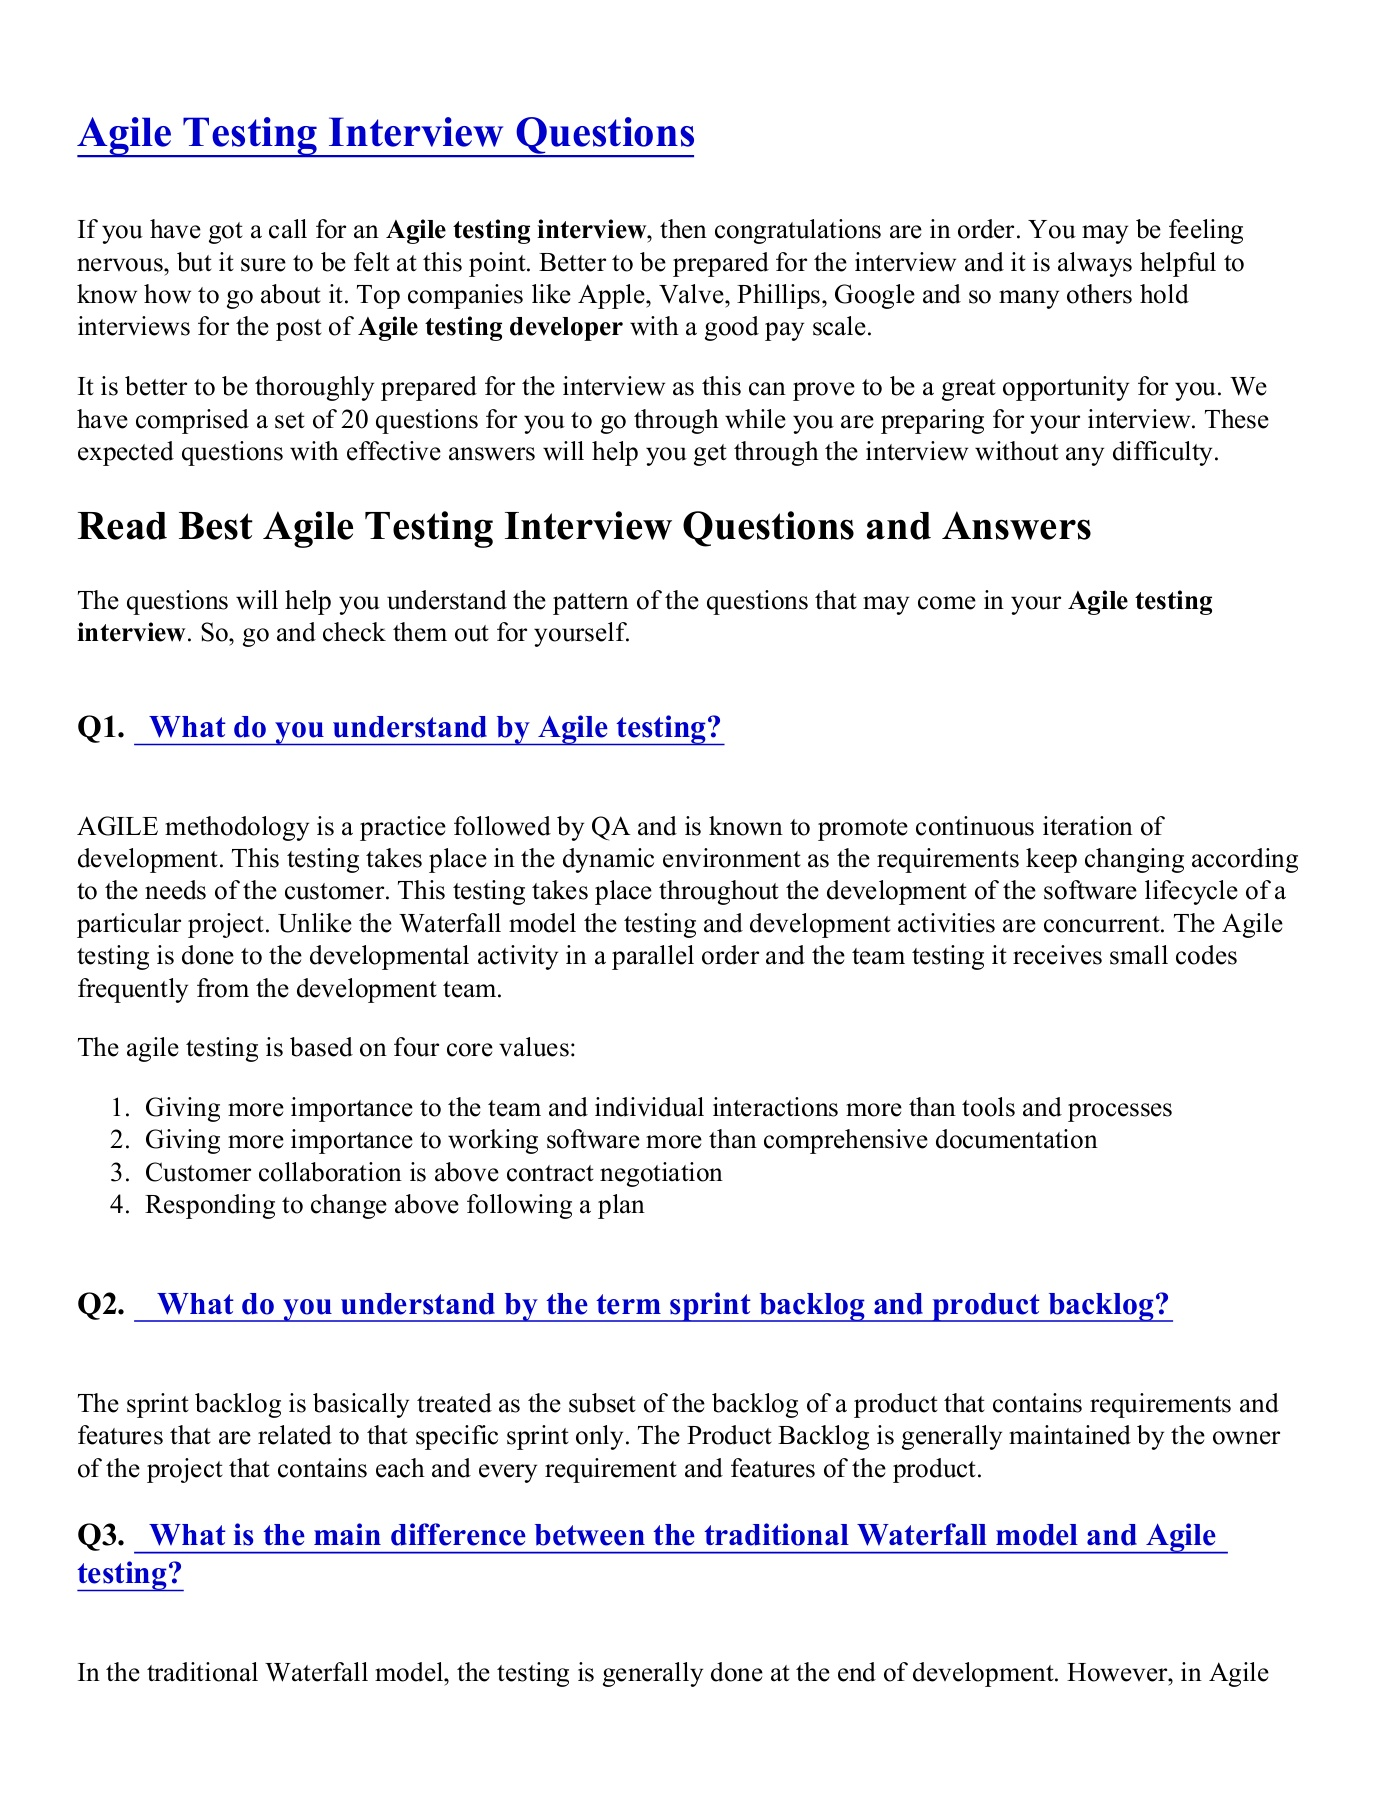 Agile testing interview Questions Series | AnyFlip